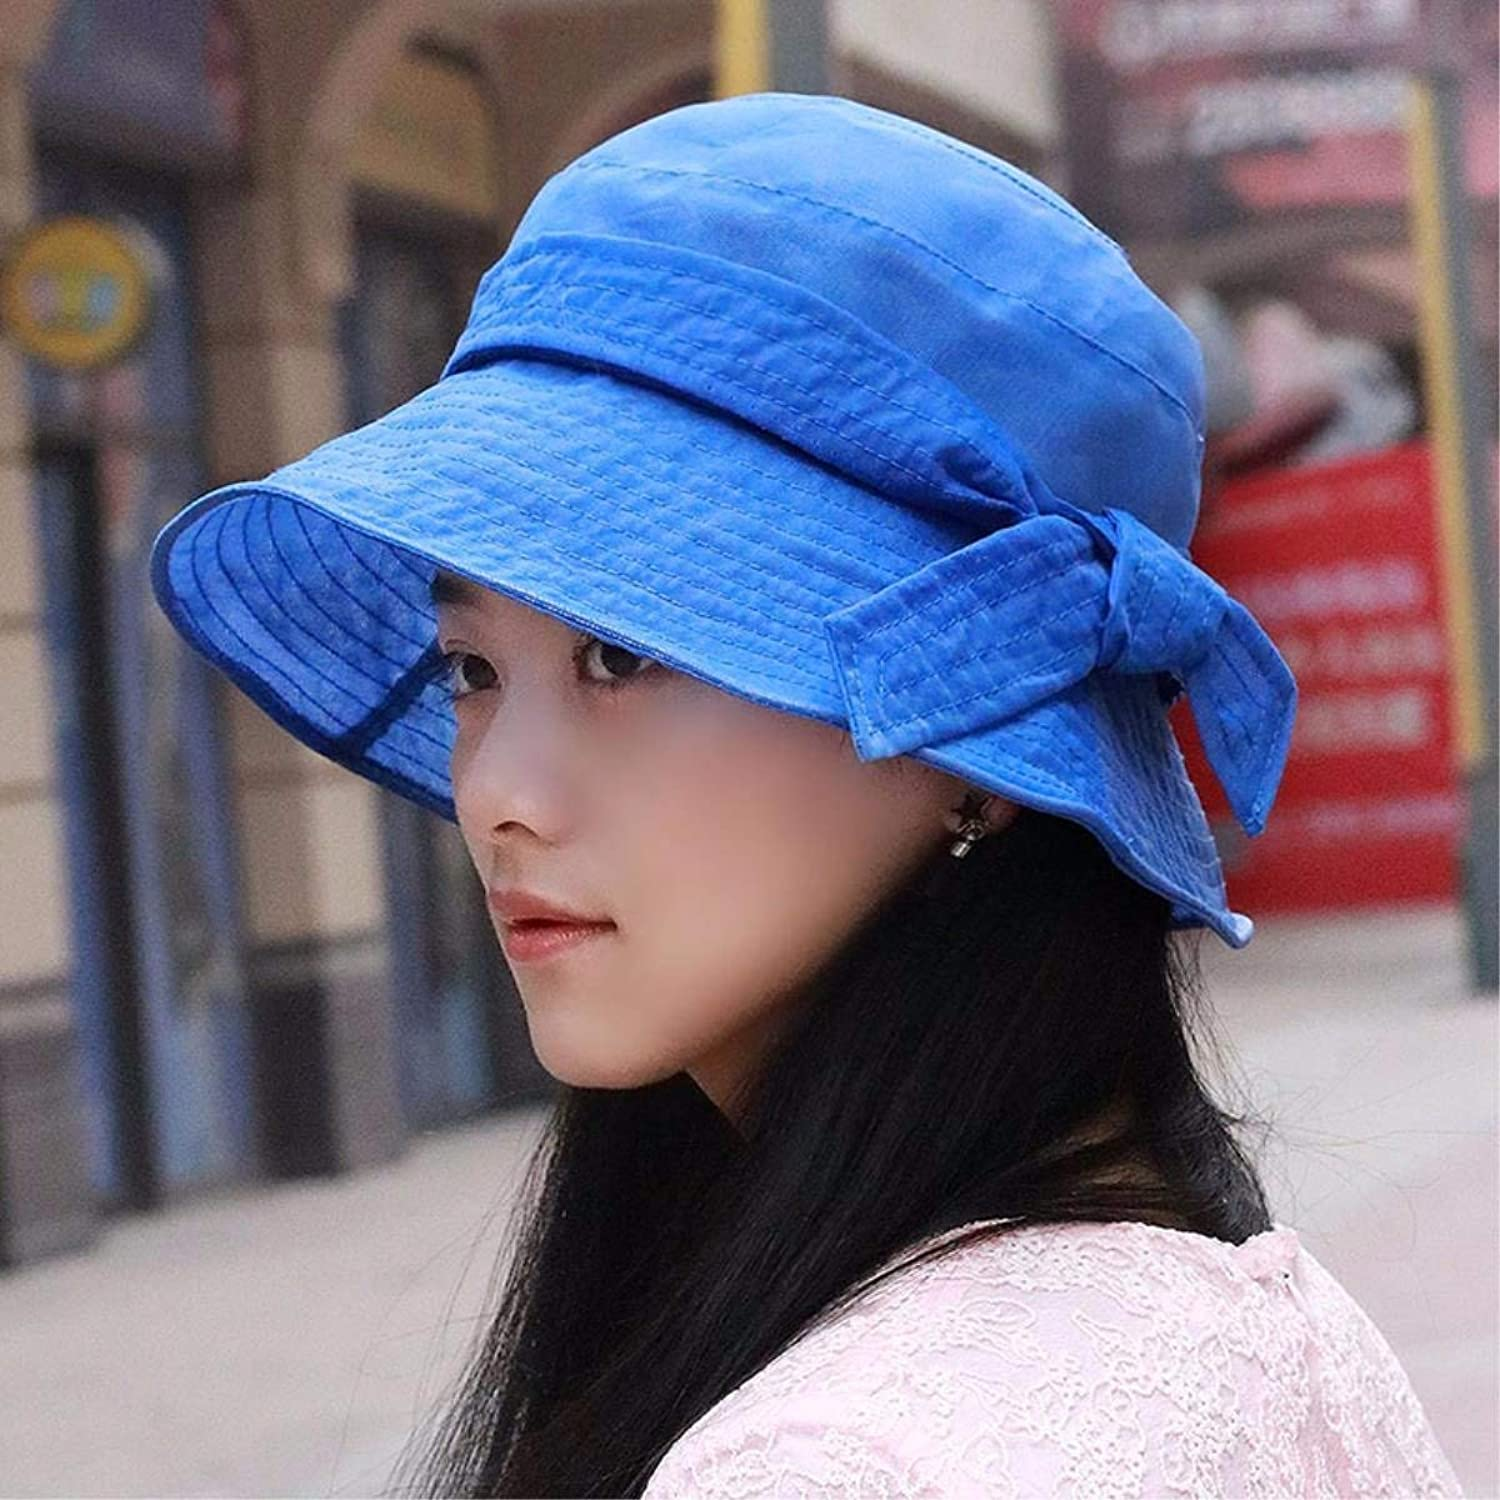 Beach Hat Autumn Thin, Breathable Snow Woven Hats Sun Hats Sun hat Beach hat with a Cool Cap Mother Cap New Summer Sun Hat (color   The blueee)